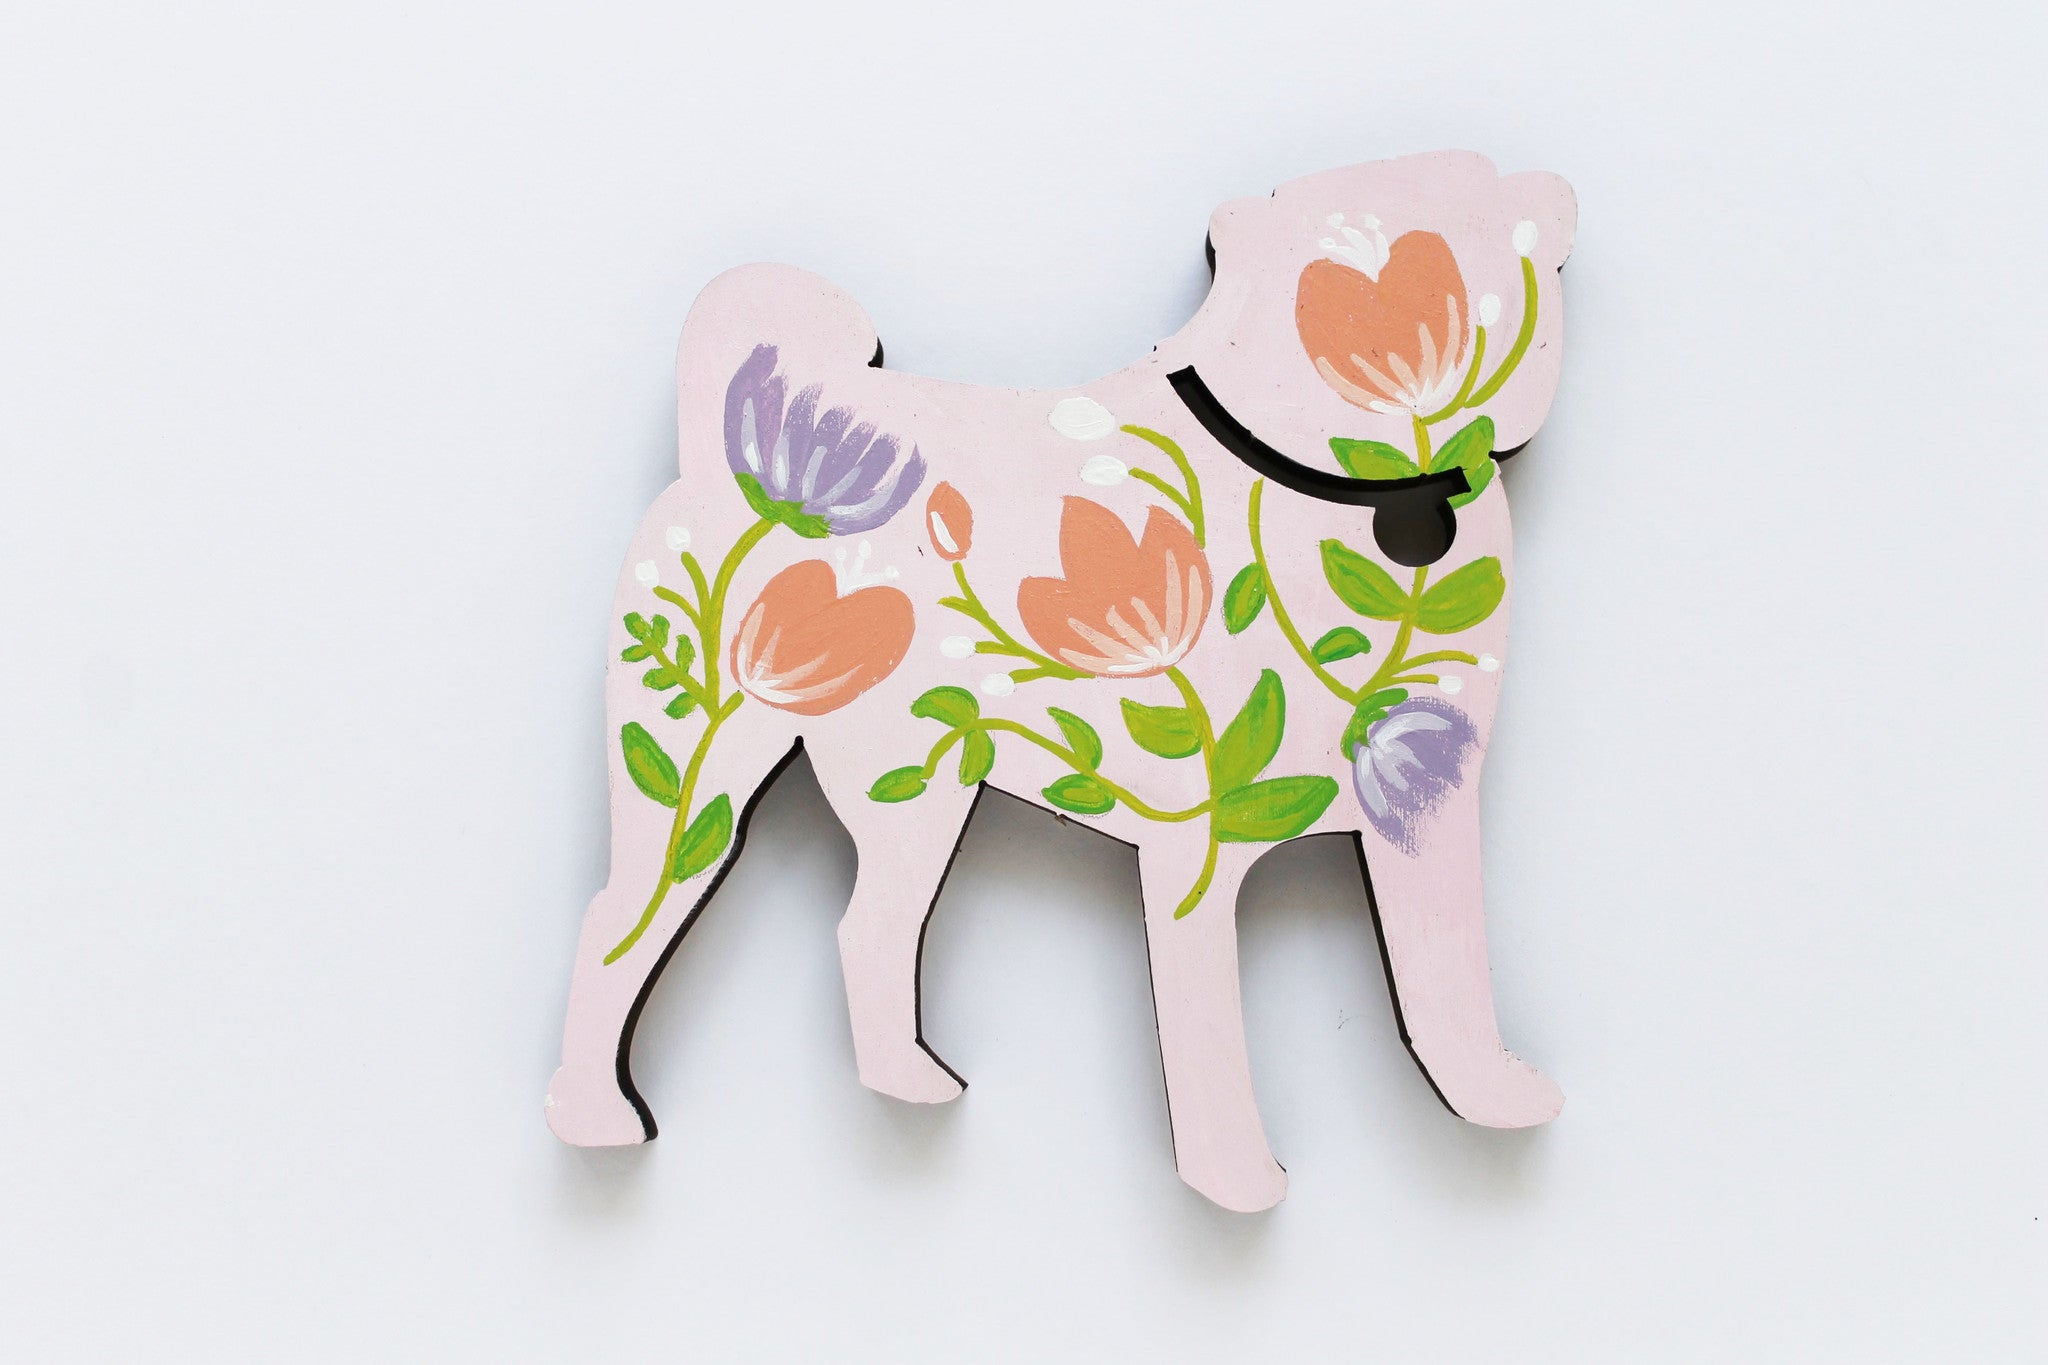 Gold Floral Pug Wooden Pug Silhouette